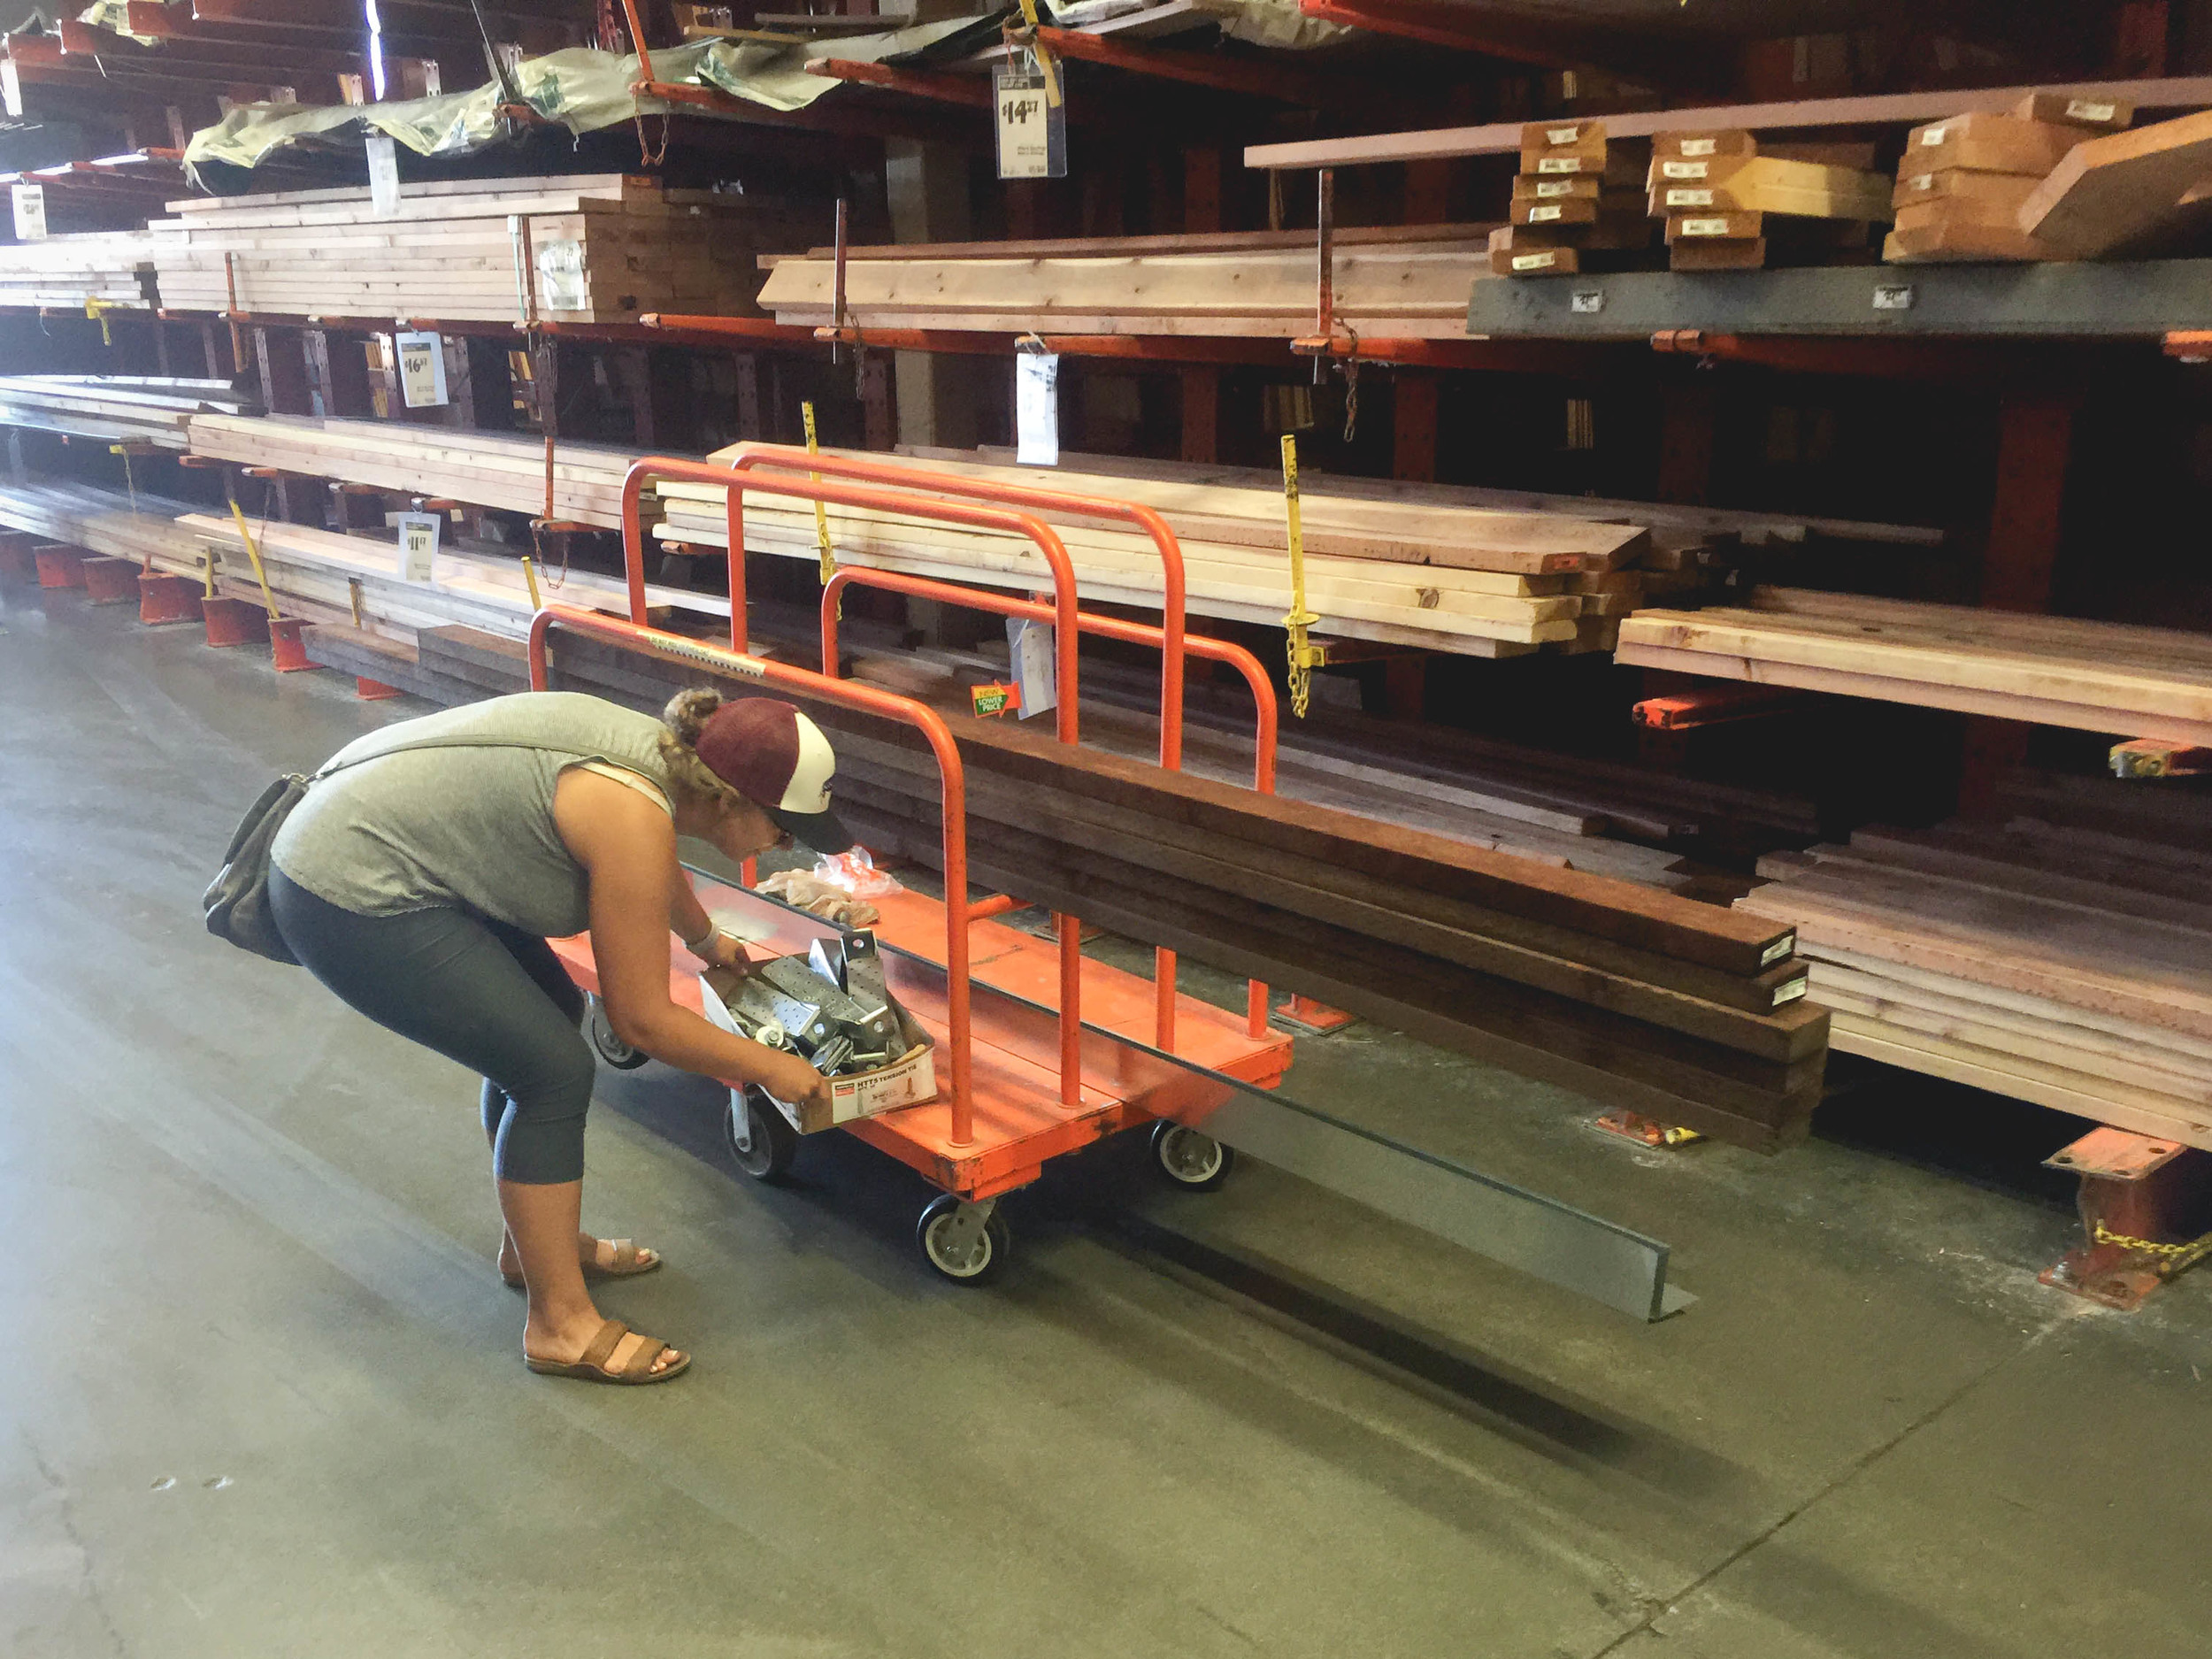 Picking up the sills, L-flashing, bolts, and tie downs. We've been making trips to Home Depot about every other day to pick up materials.